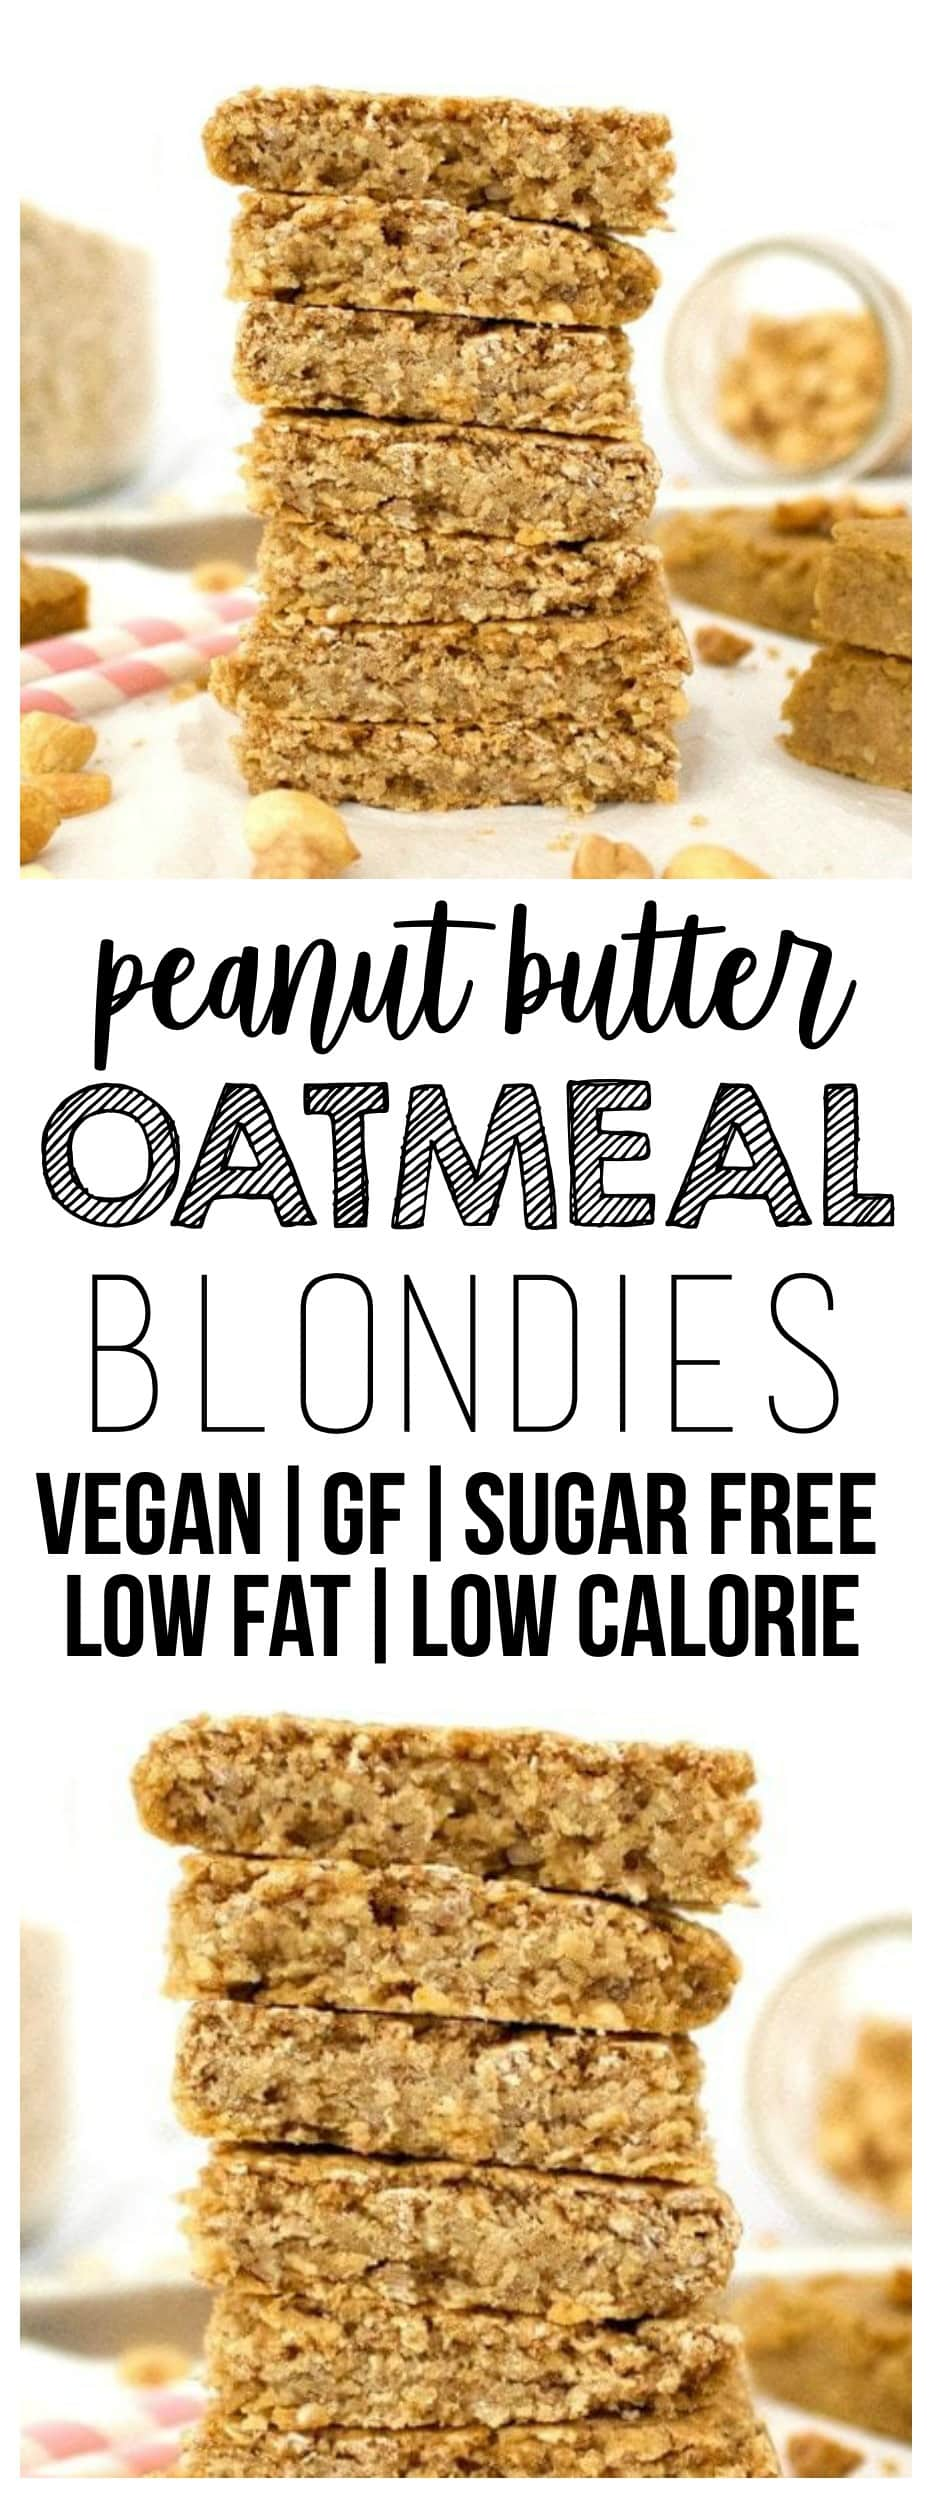 These AMAZING Vegan Peanut Butter Oatmeal Blondies are the perfect breakfast or snack! They are loaded with nutritious ingredients, but taste like an indulgent treat. They're also gluten-free, sugar-free, oil-free, low-fat, low-carb, dairy-free and low-calorie - only 75 calories each!